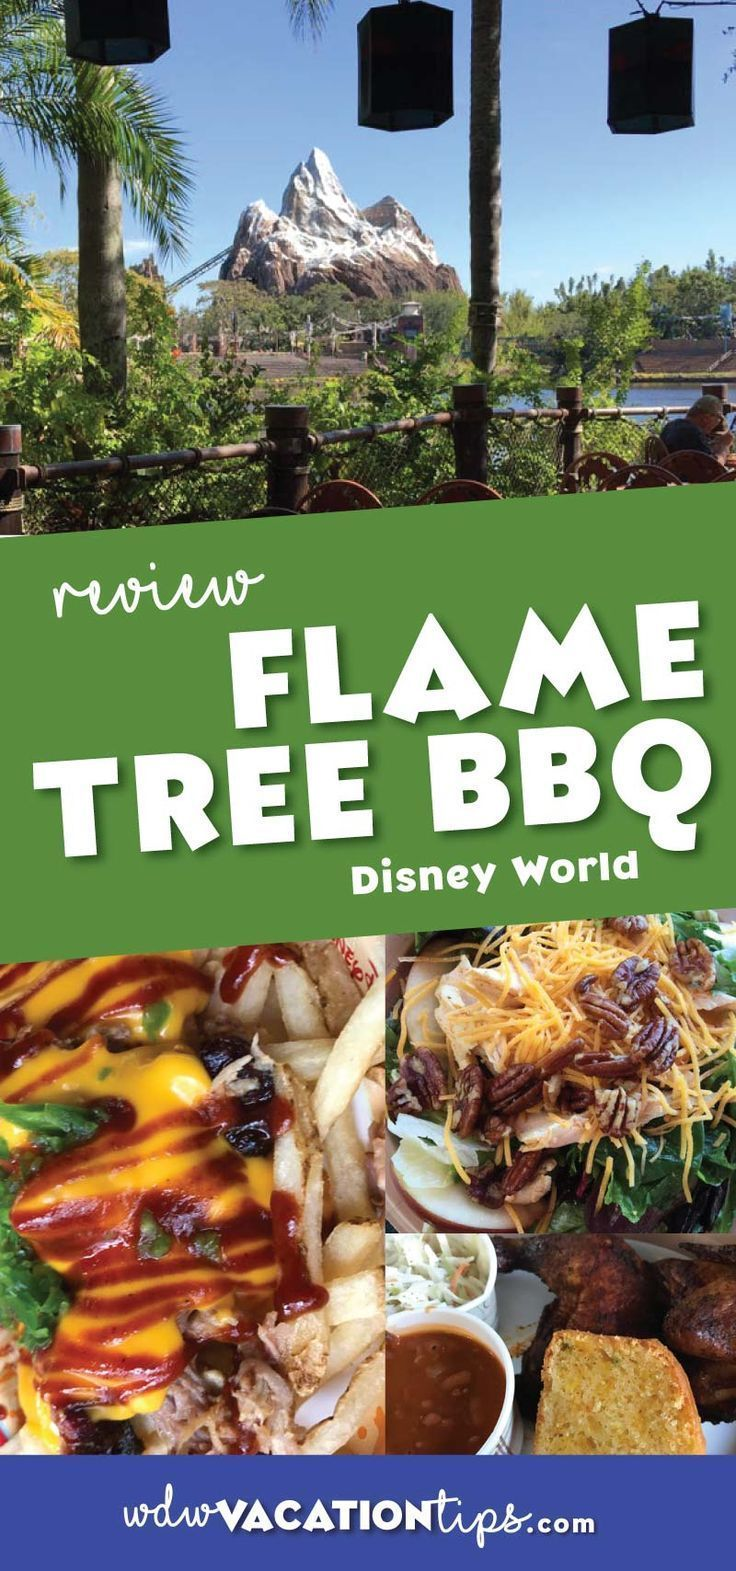 The Flame Tree BBQ is a quick service restaurant located